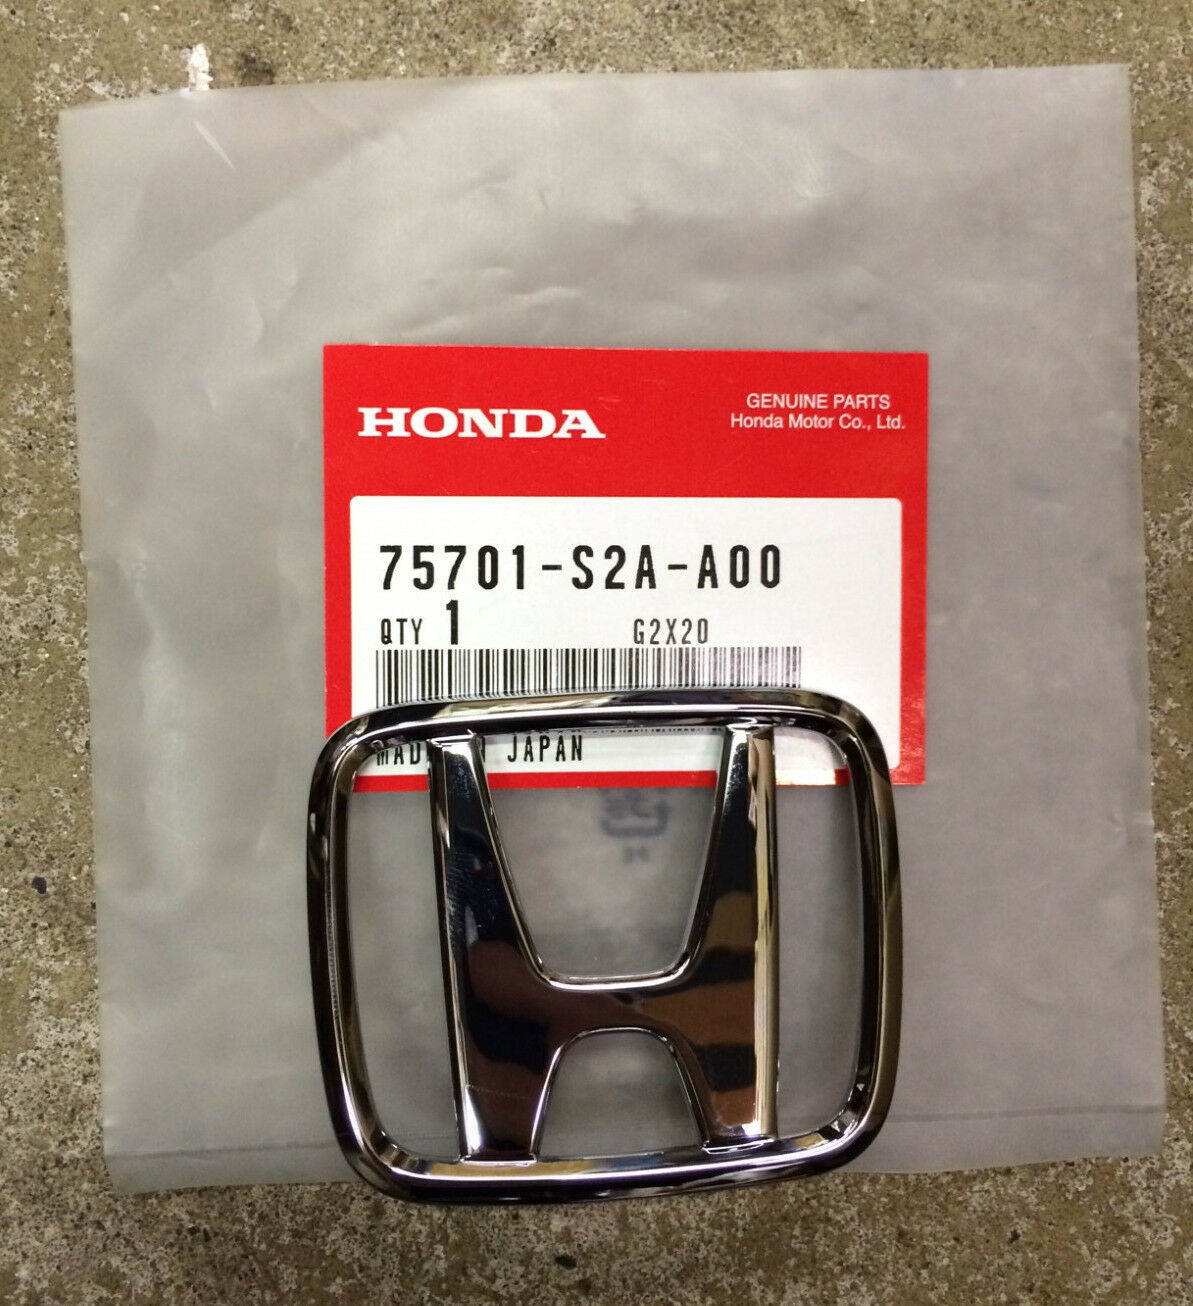 Genuine Oem Honda Cr V 1997 2001 Rear H Emblem 2995 Picclick Crv Parts Discount Factory And 1 Of 2free Shipping